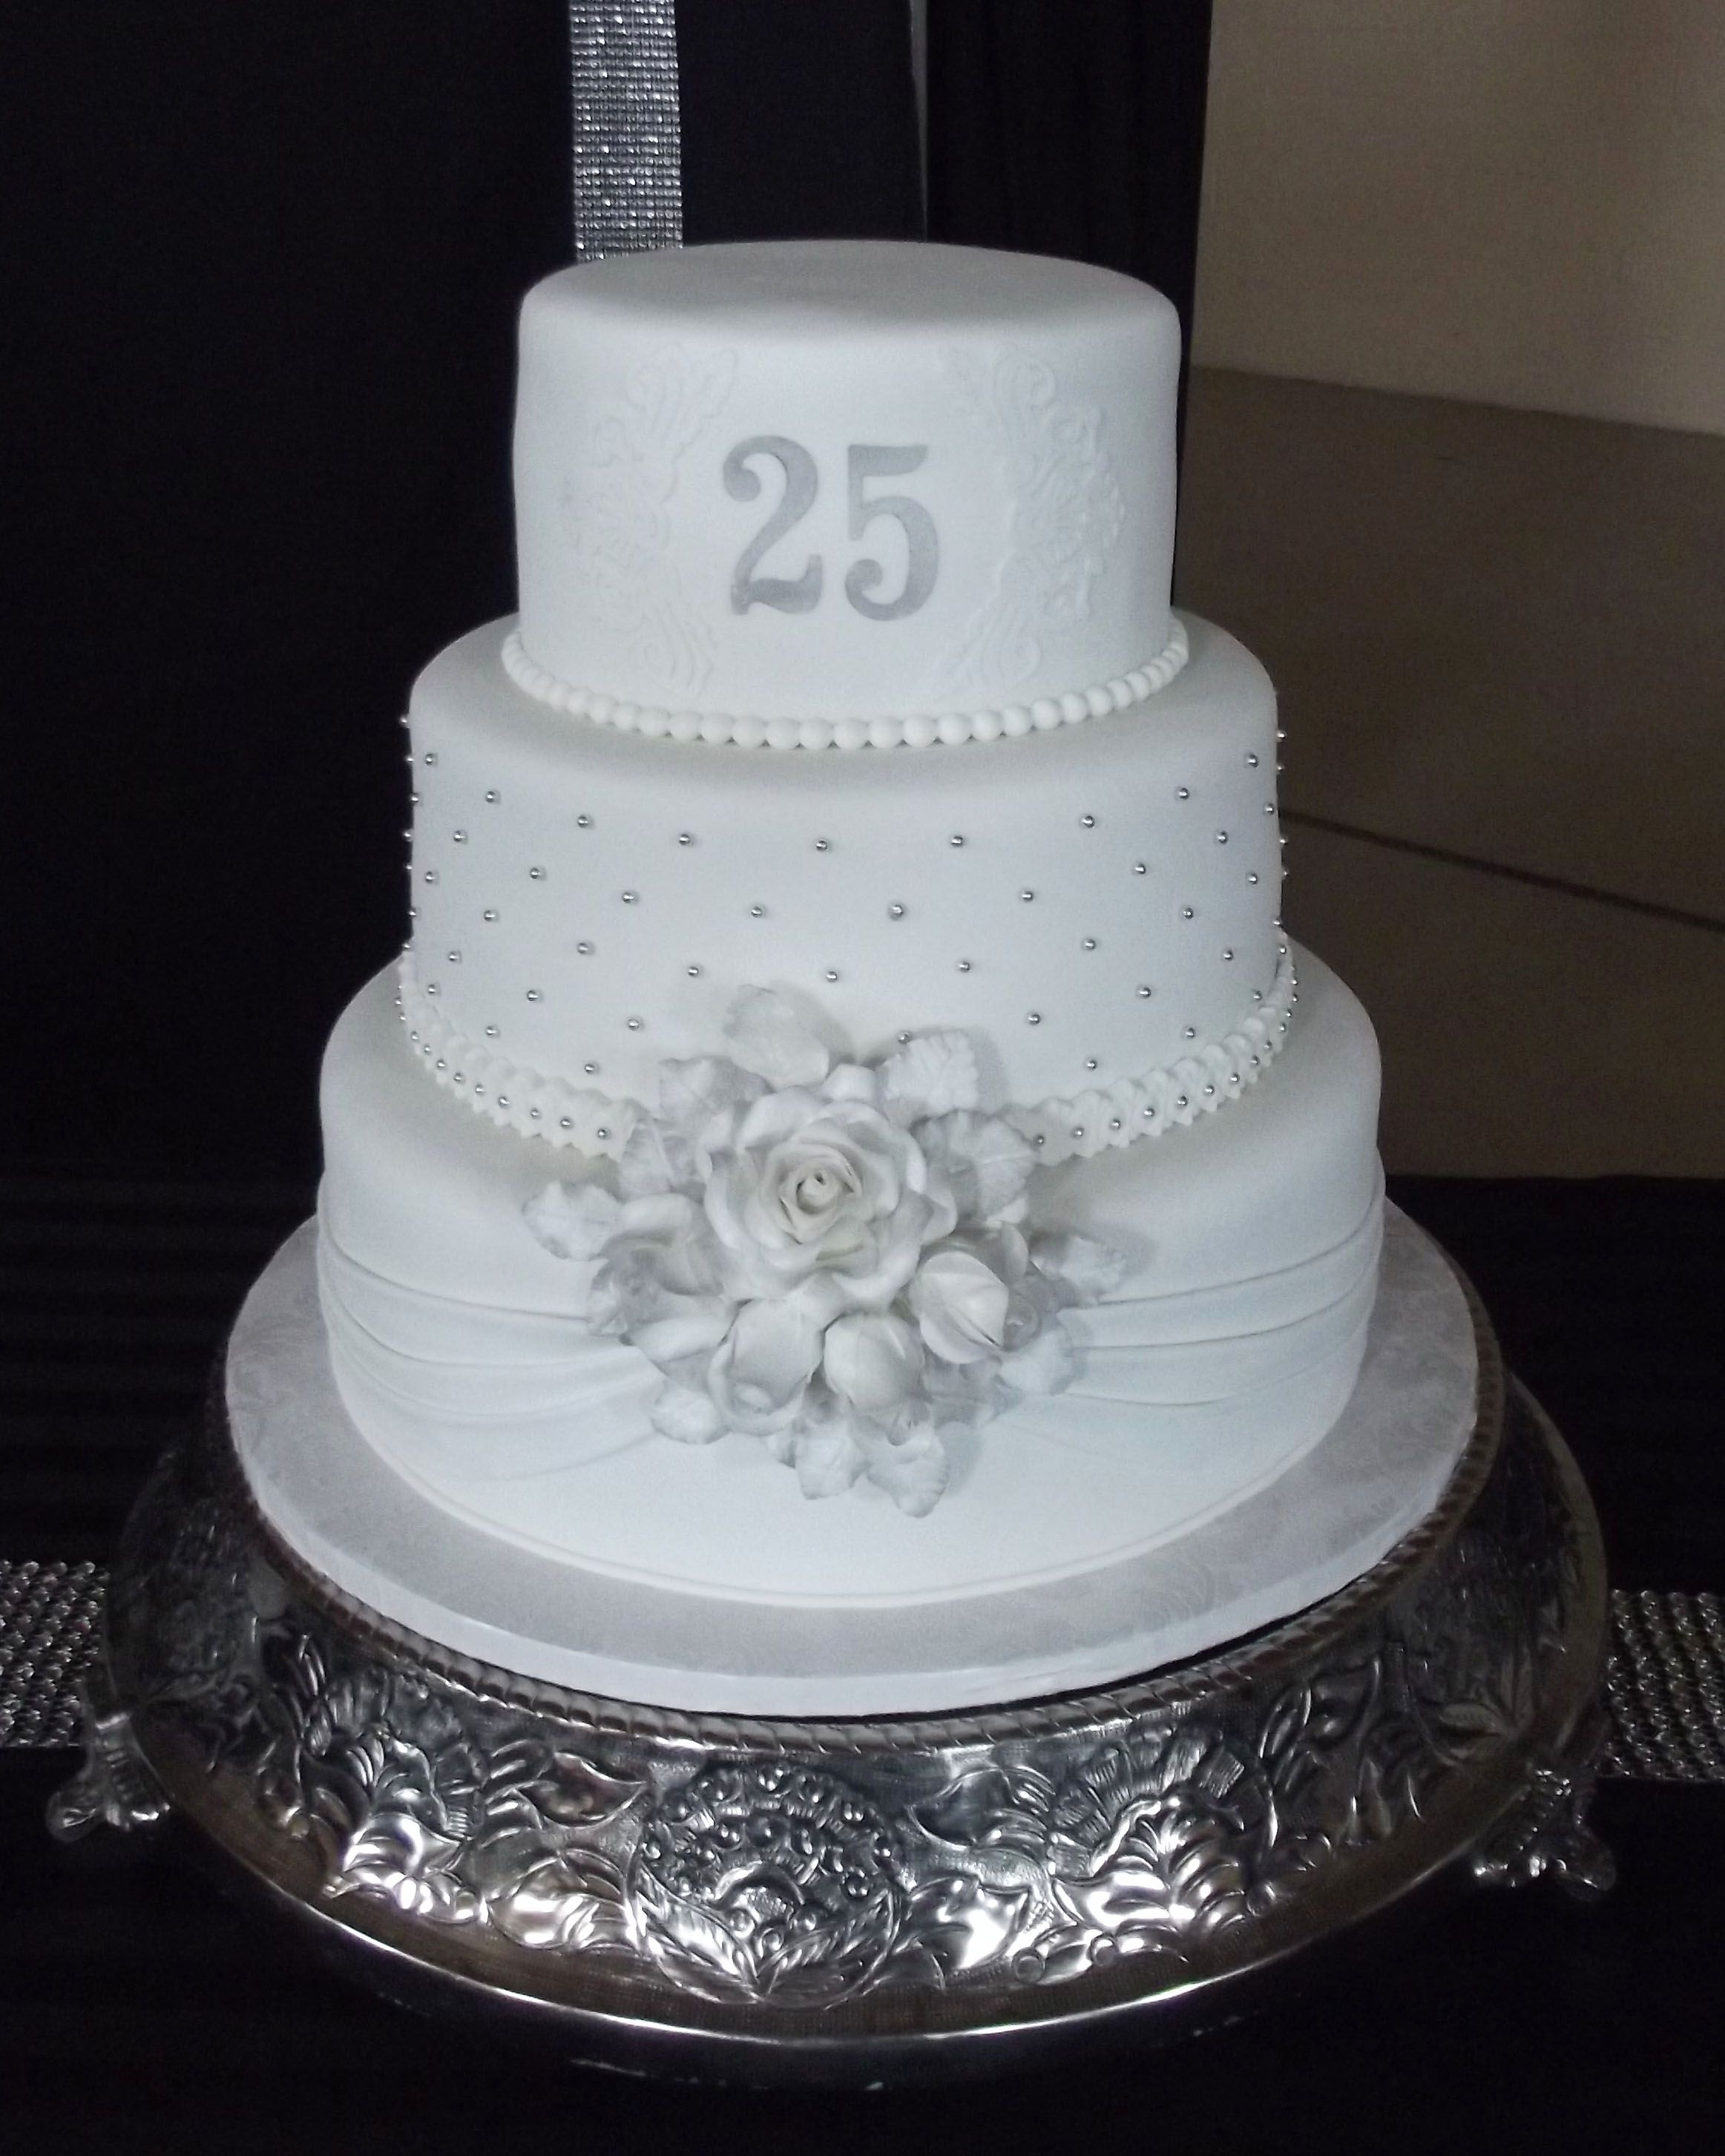 Cake Pic For Wedding Anniversary : Best 25+ 25th wedding anniversary cakes ideas on Pinterest ...